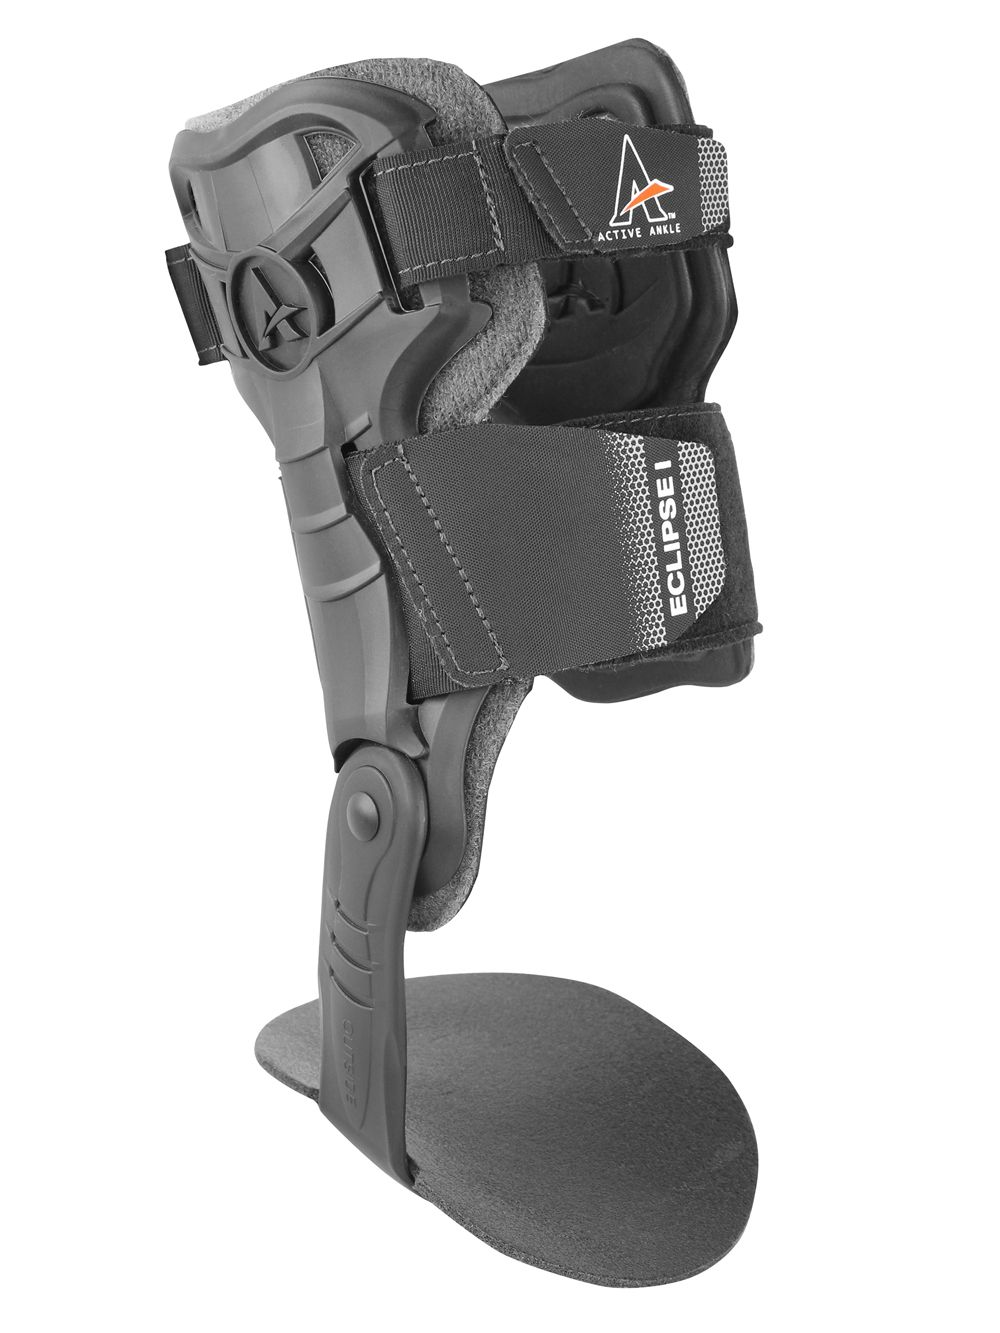 Active Ankle Eclipse I Ankle Brace Volleyball Braces Golf Bags